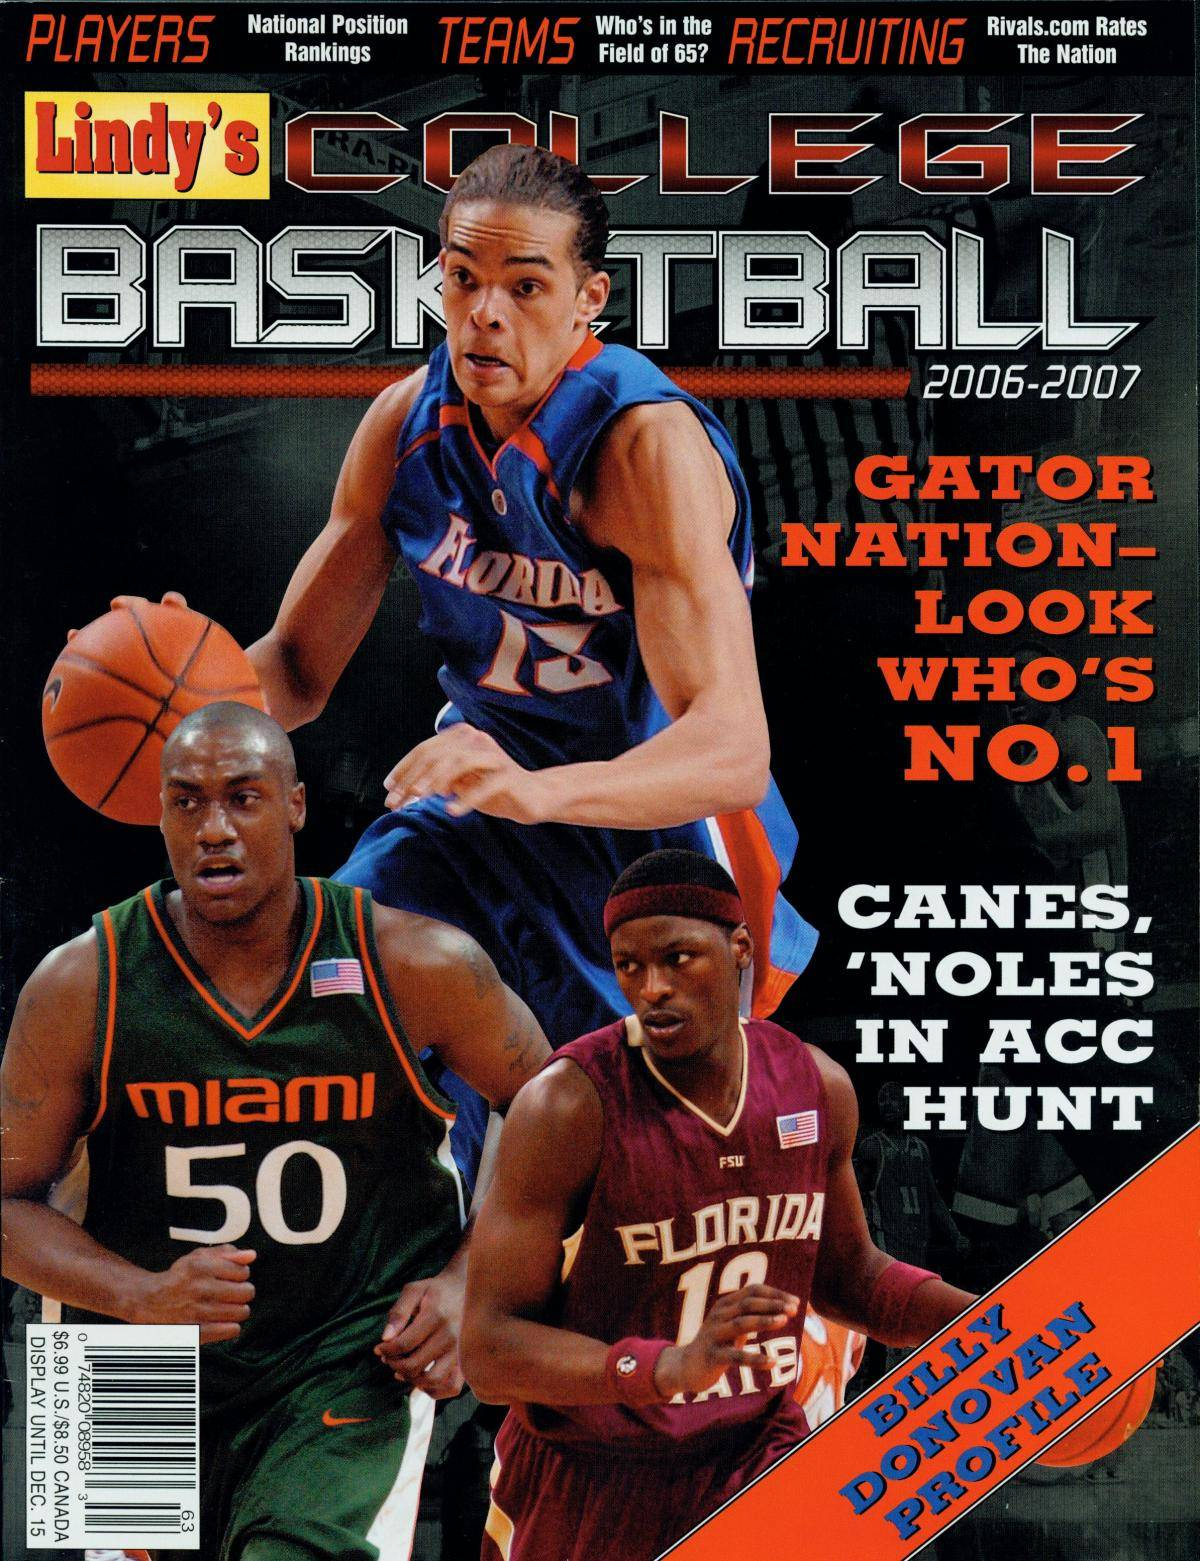 All-America candidate Al Thornton is pictured on the Lindy's College#$%^Basketball annual for the 2006-07 season.